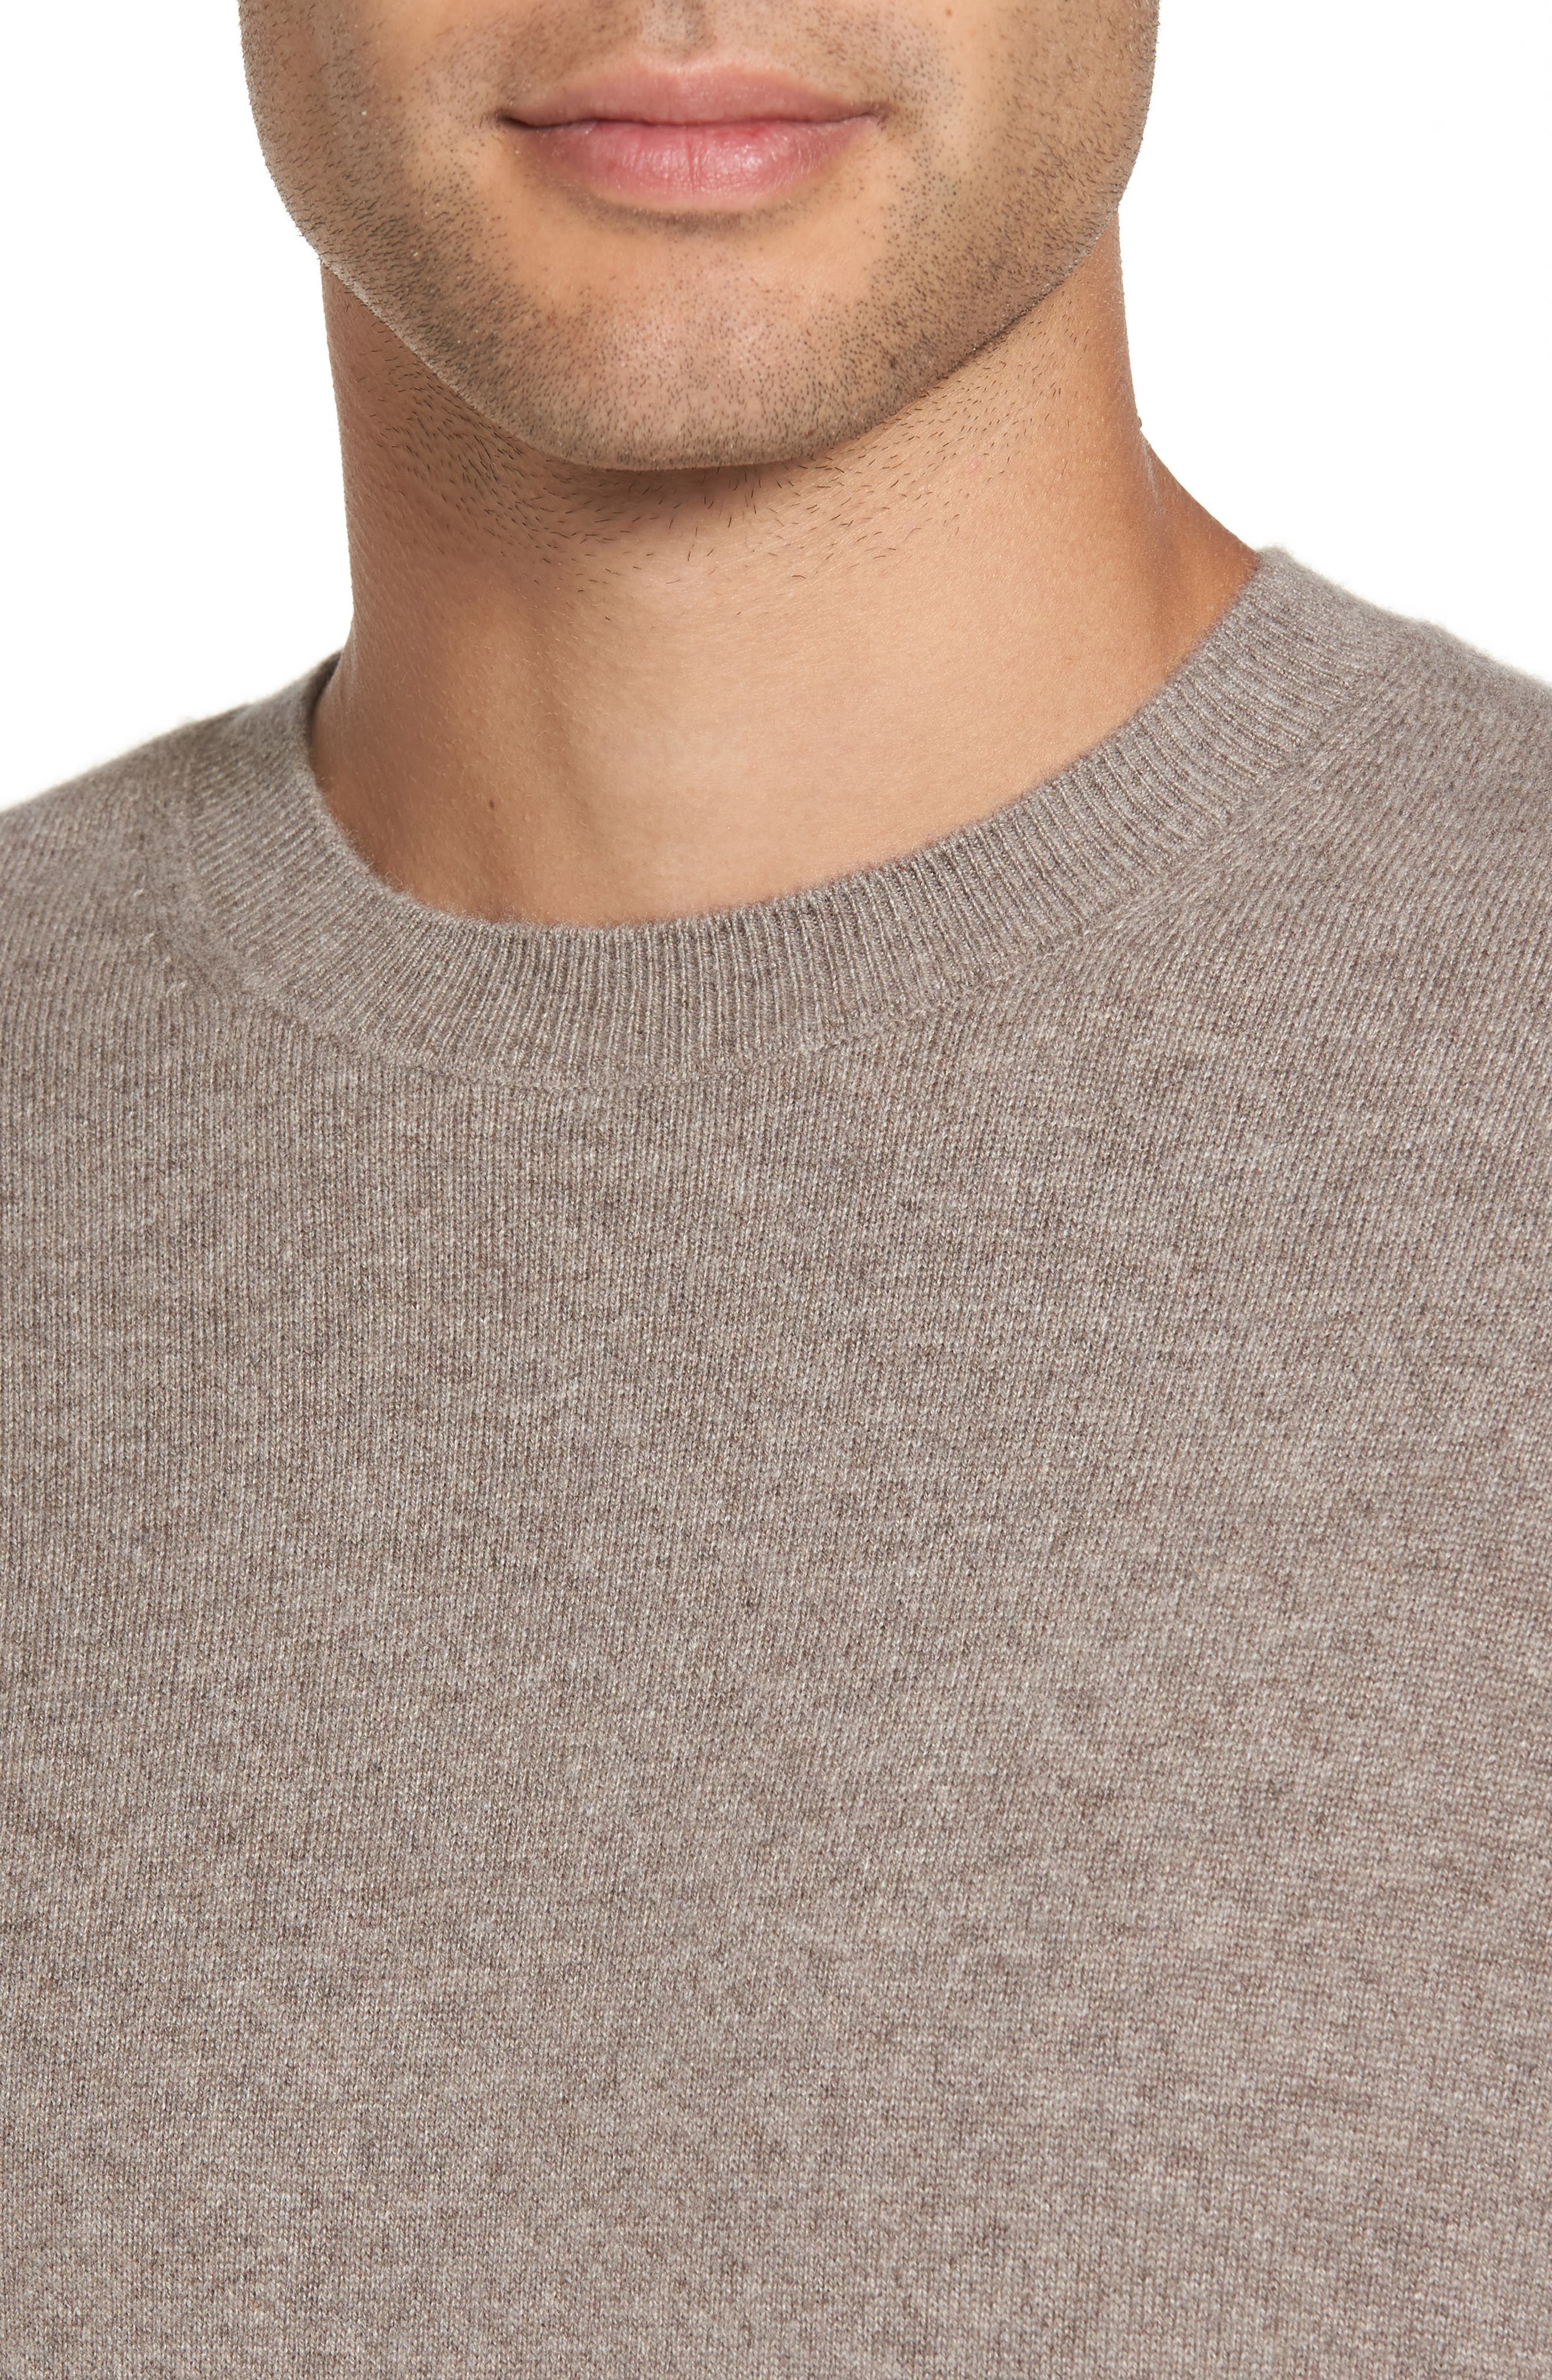 Regular Fit Crewneck Sweater,                             Alternate thumbnail 4, color,                             281